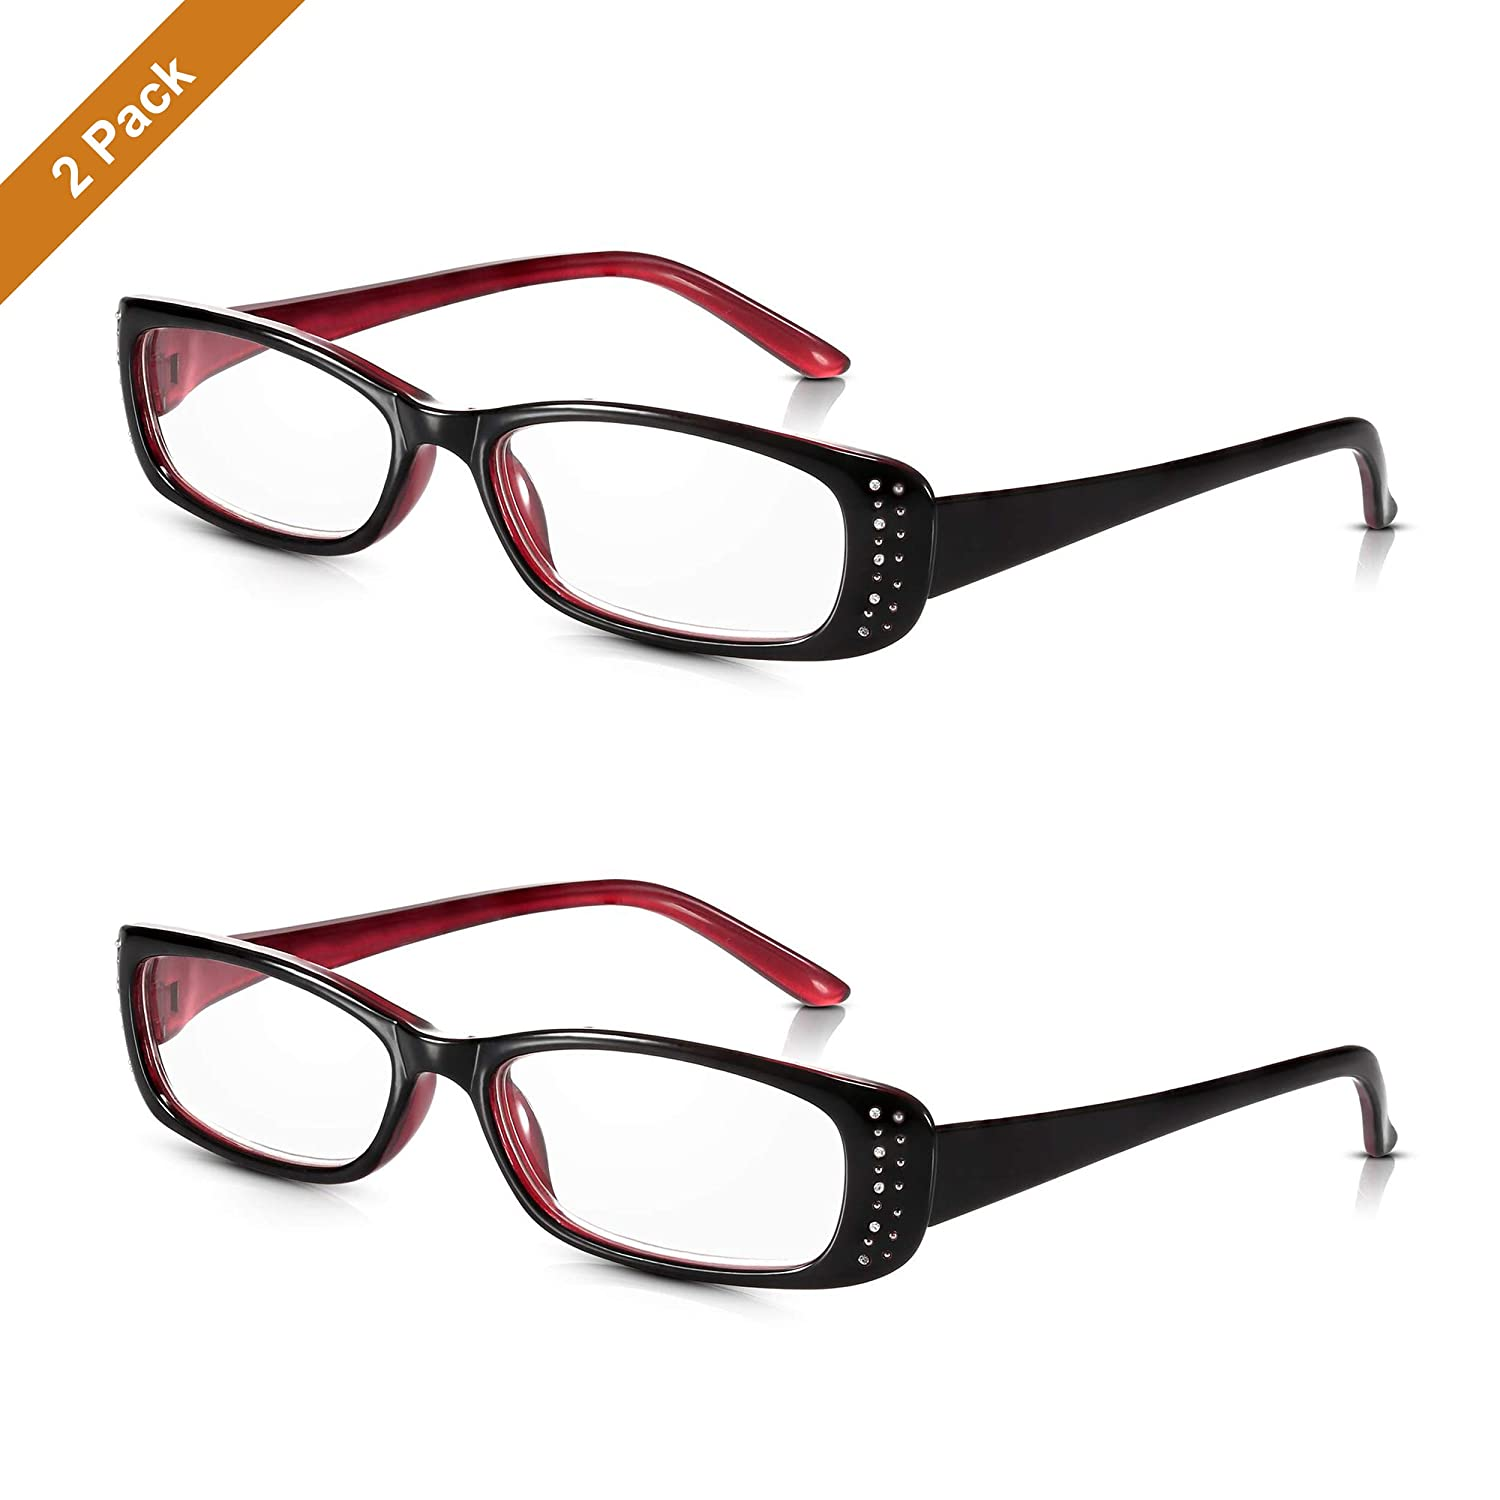 1.50 Pretty Readers for Ladies with Diamante Studs in Chic Crystal BlackBerry and Pink Blush Lightweight Polycarbonate with Oval Optical Quality Lenses Read Optics Womens Reading Glasses Durable